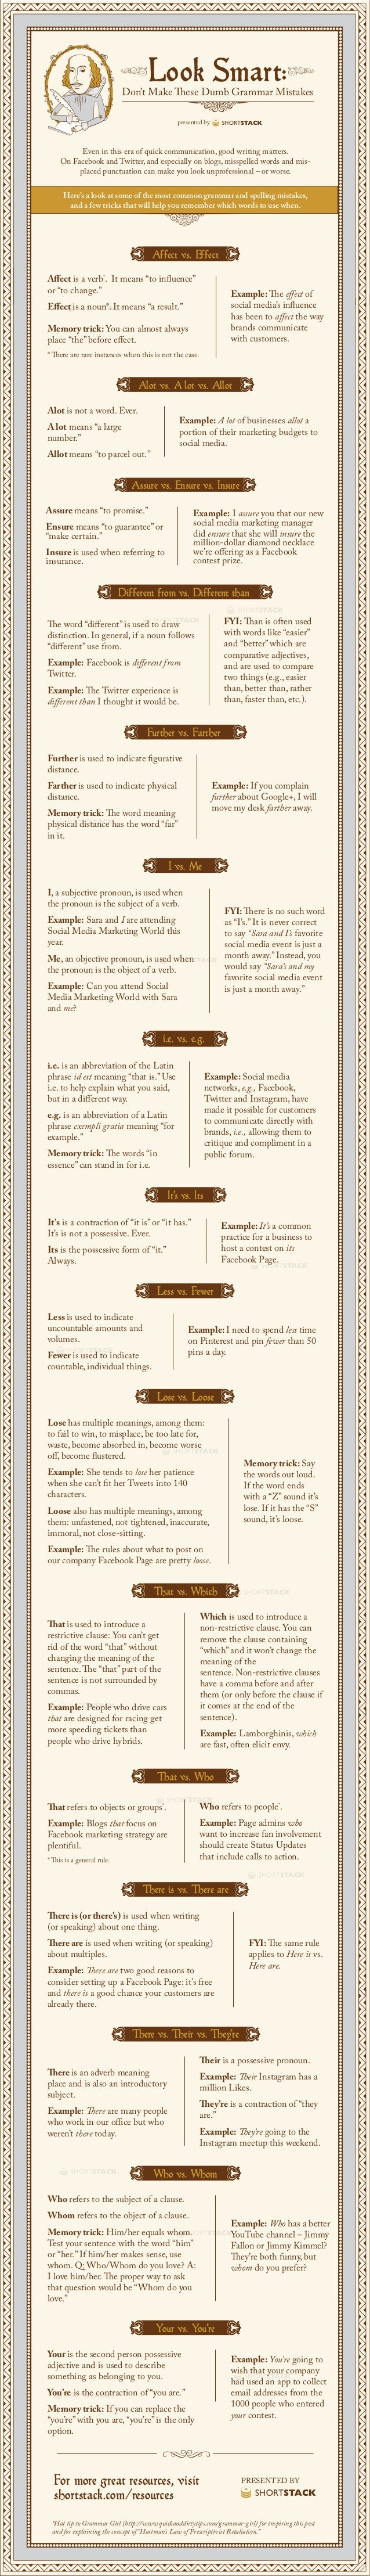 Look Smart: Don't Make These Dumb Grammar Mistakes presented by Even in this era of quick communication, good writing matt...